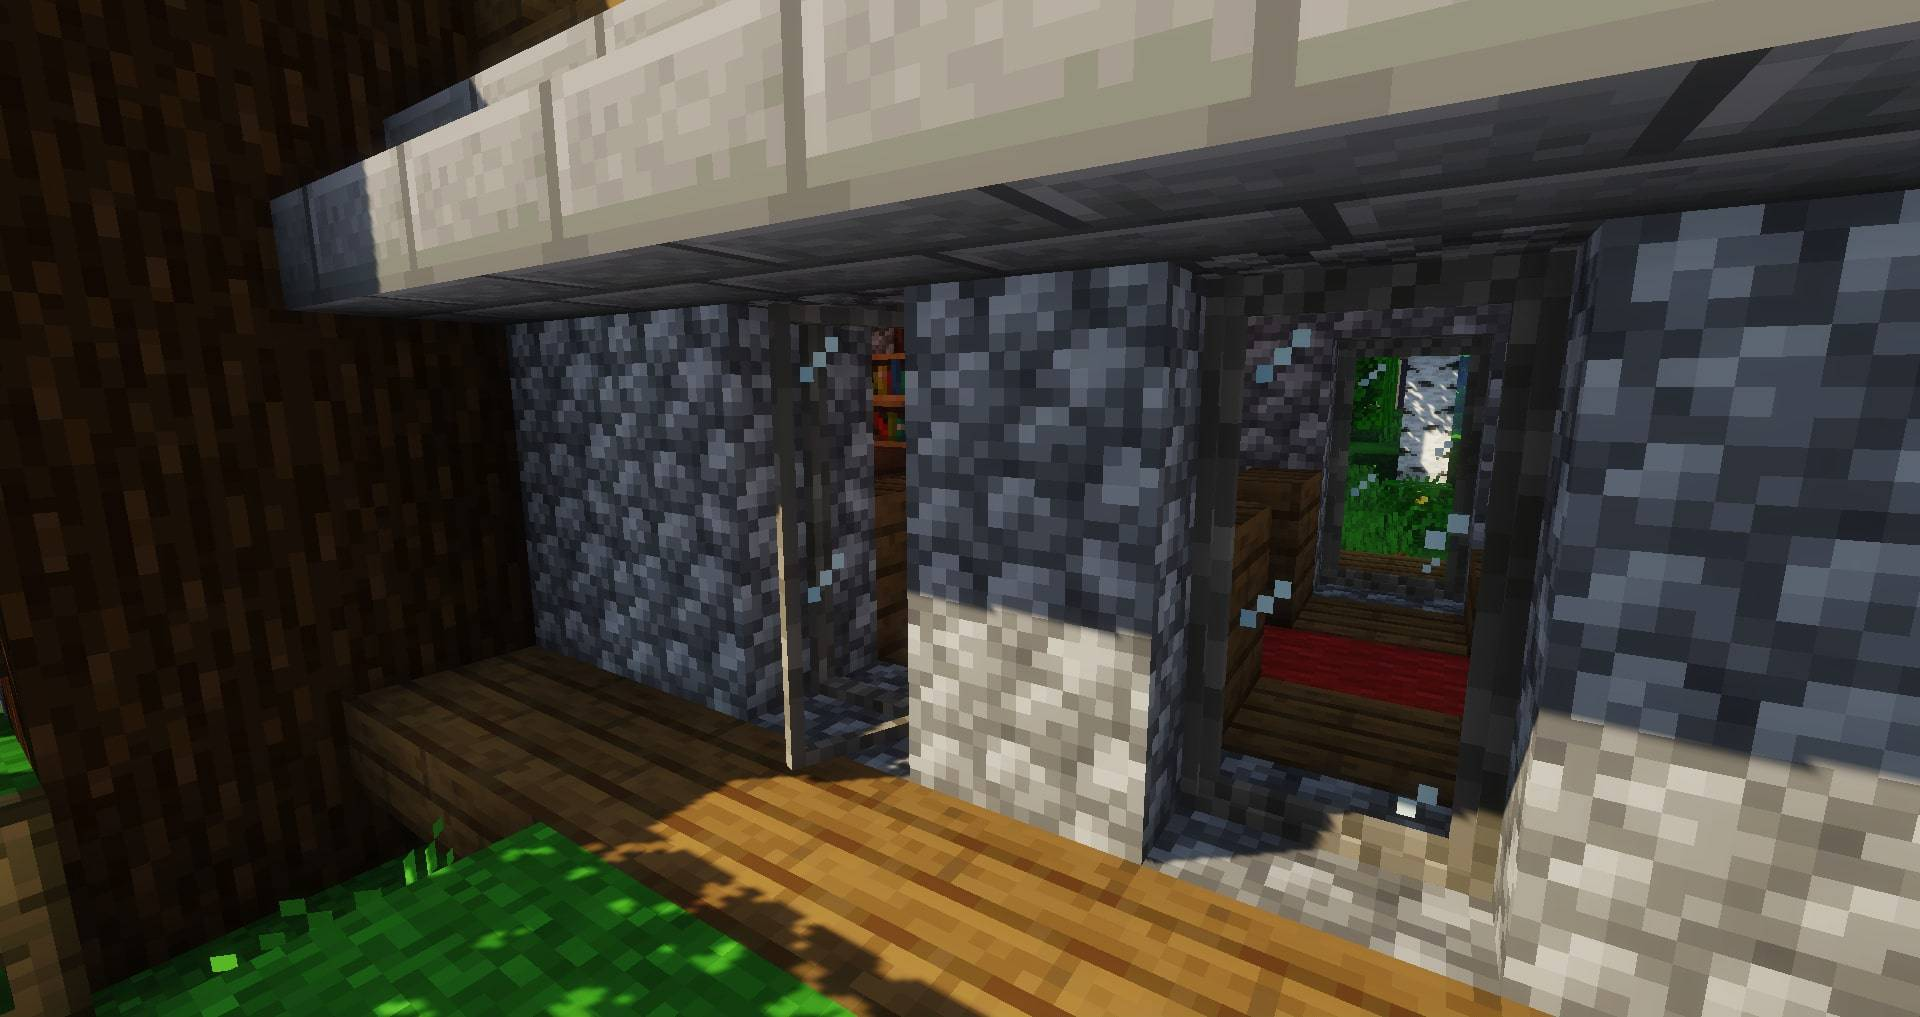 Macaw_s Windows mod for minecraft 22